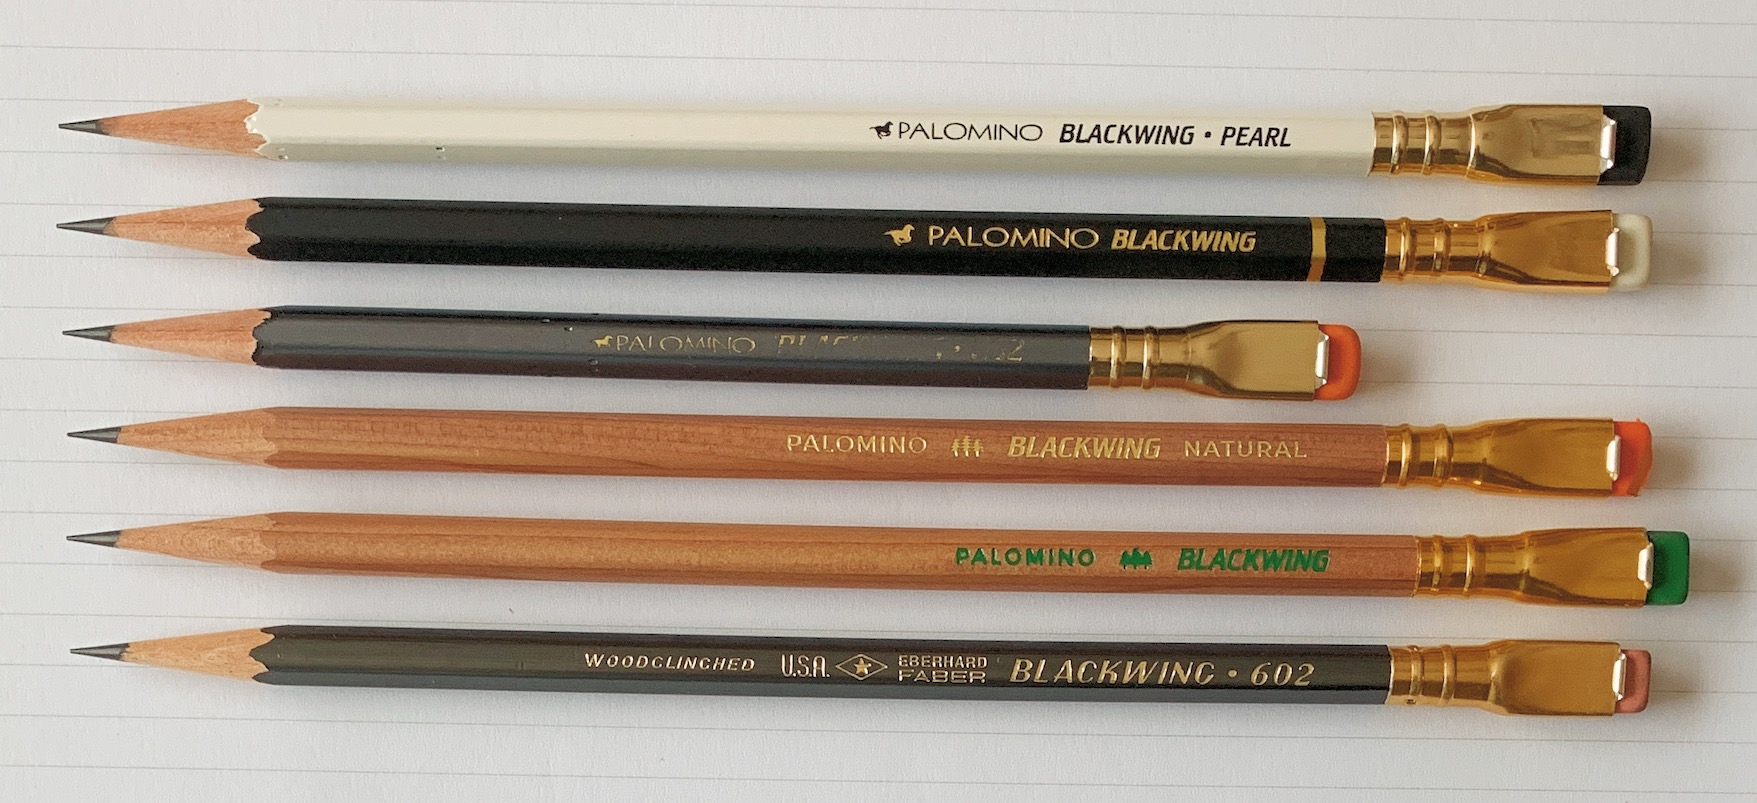 Palomino Blackwing Review